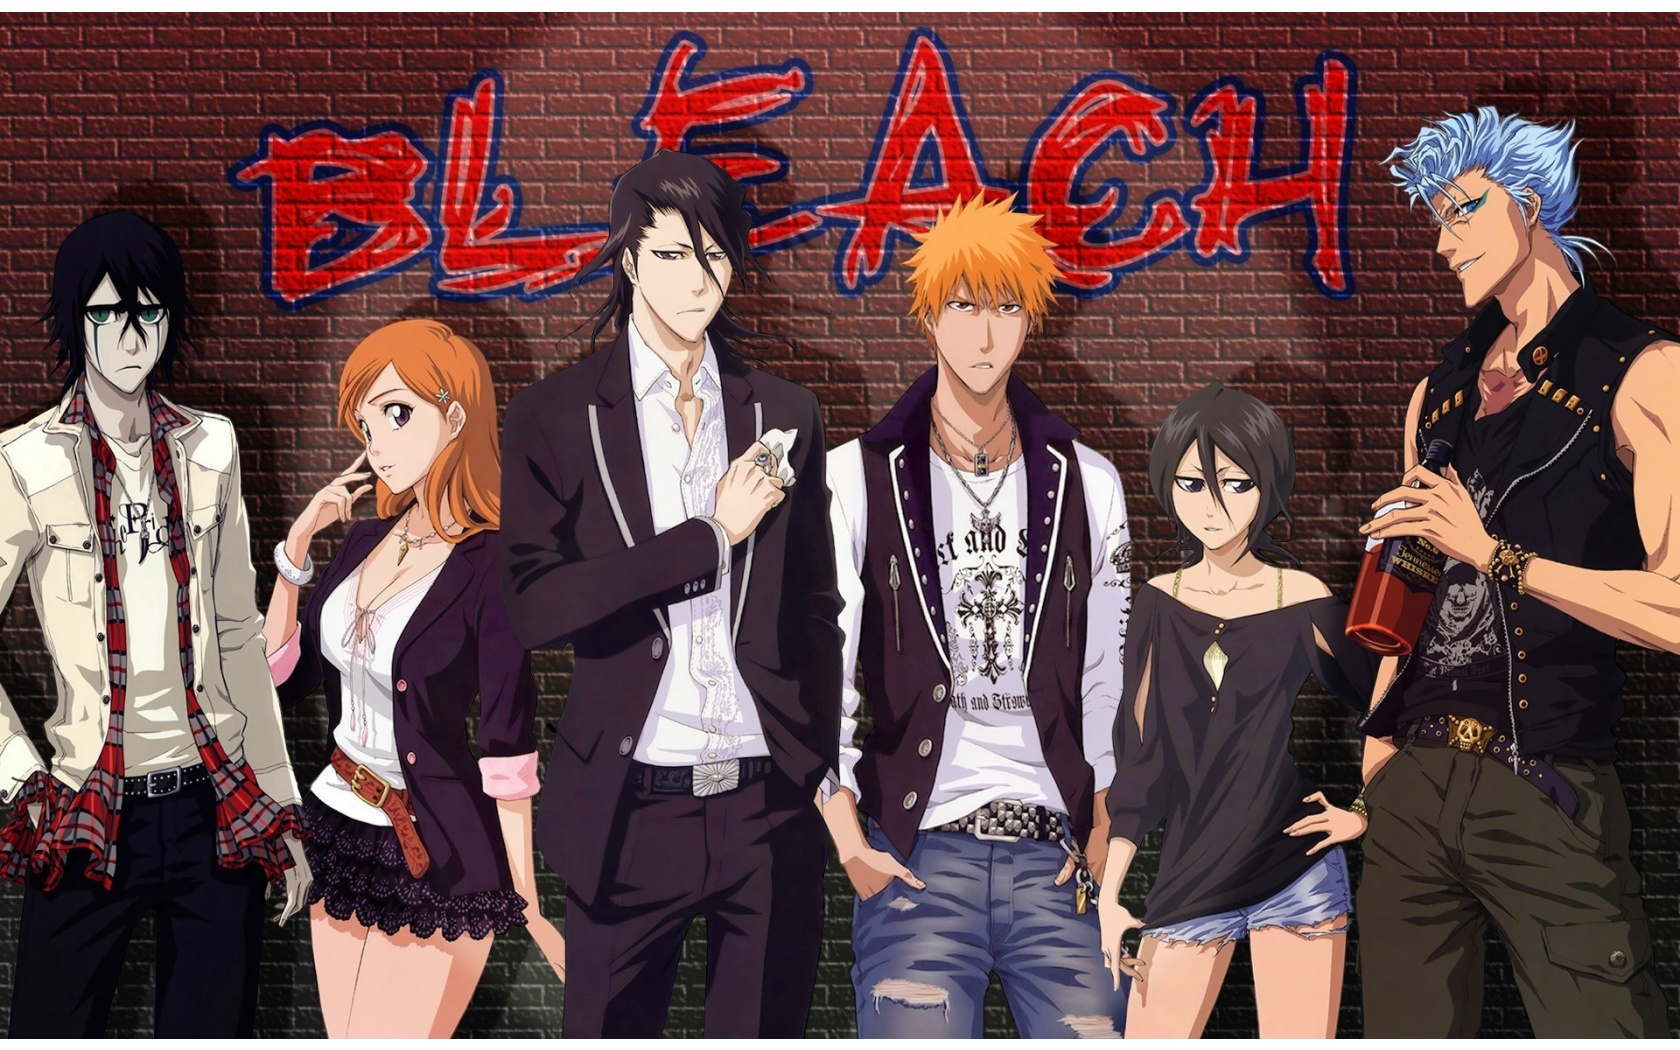 Bleach Anime Group Wallpapers - 1680x1050 - 688388